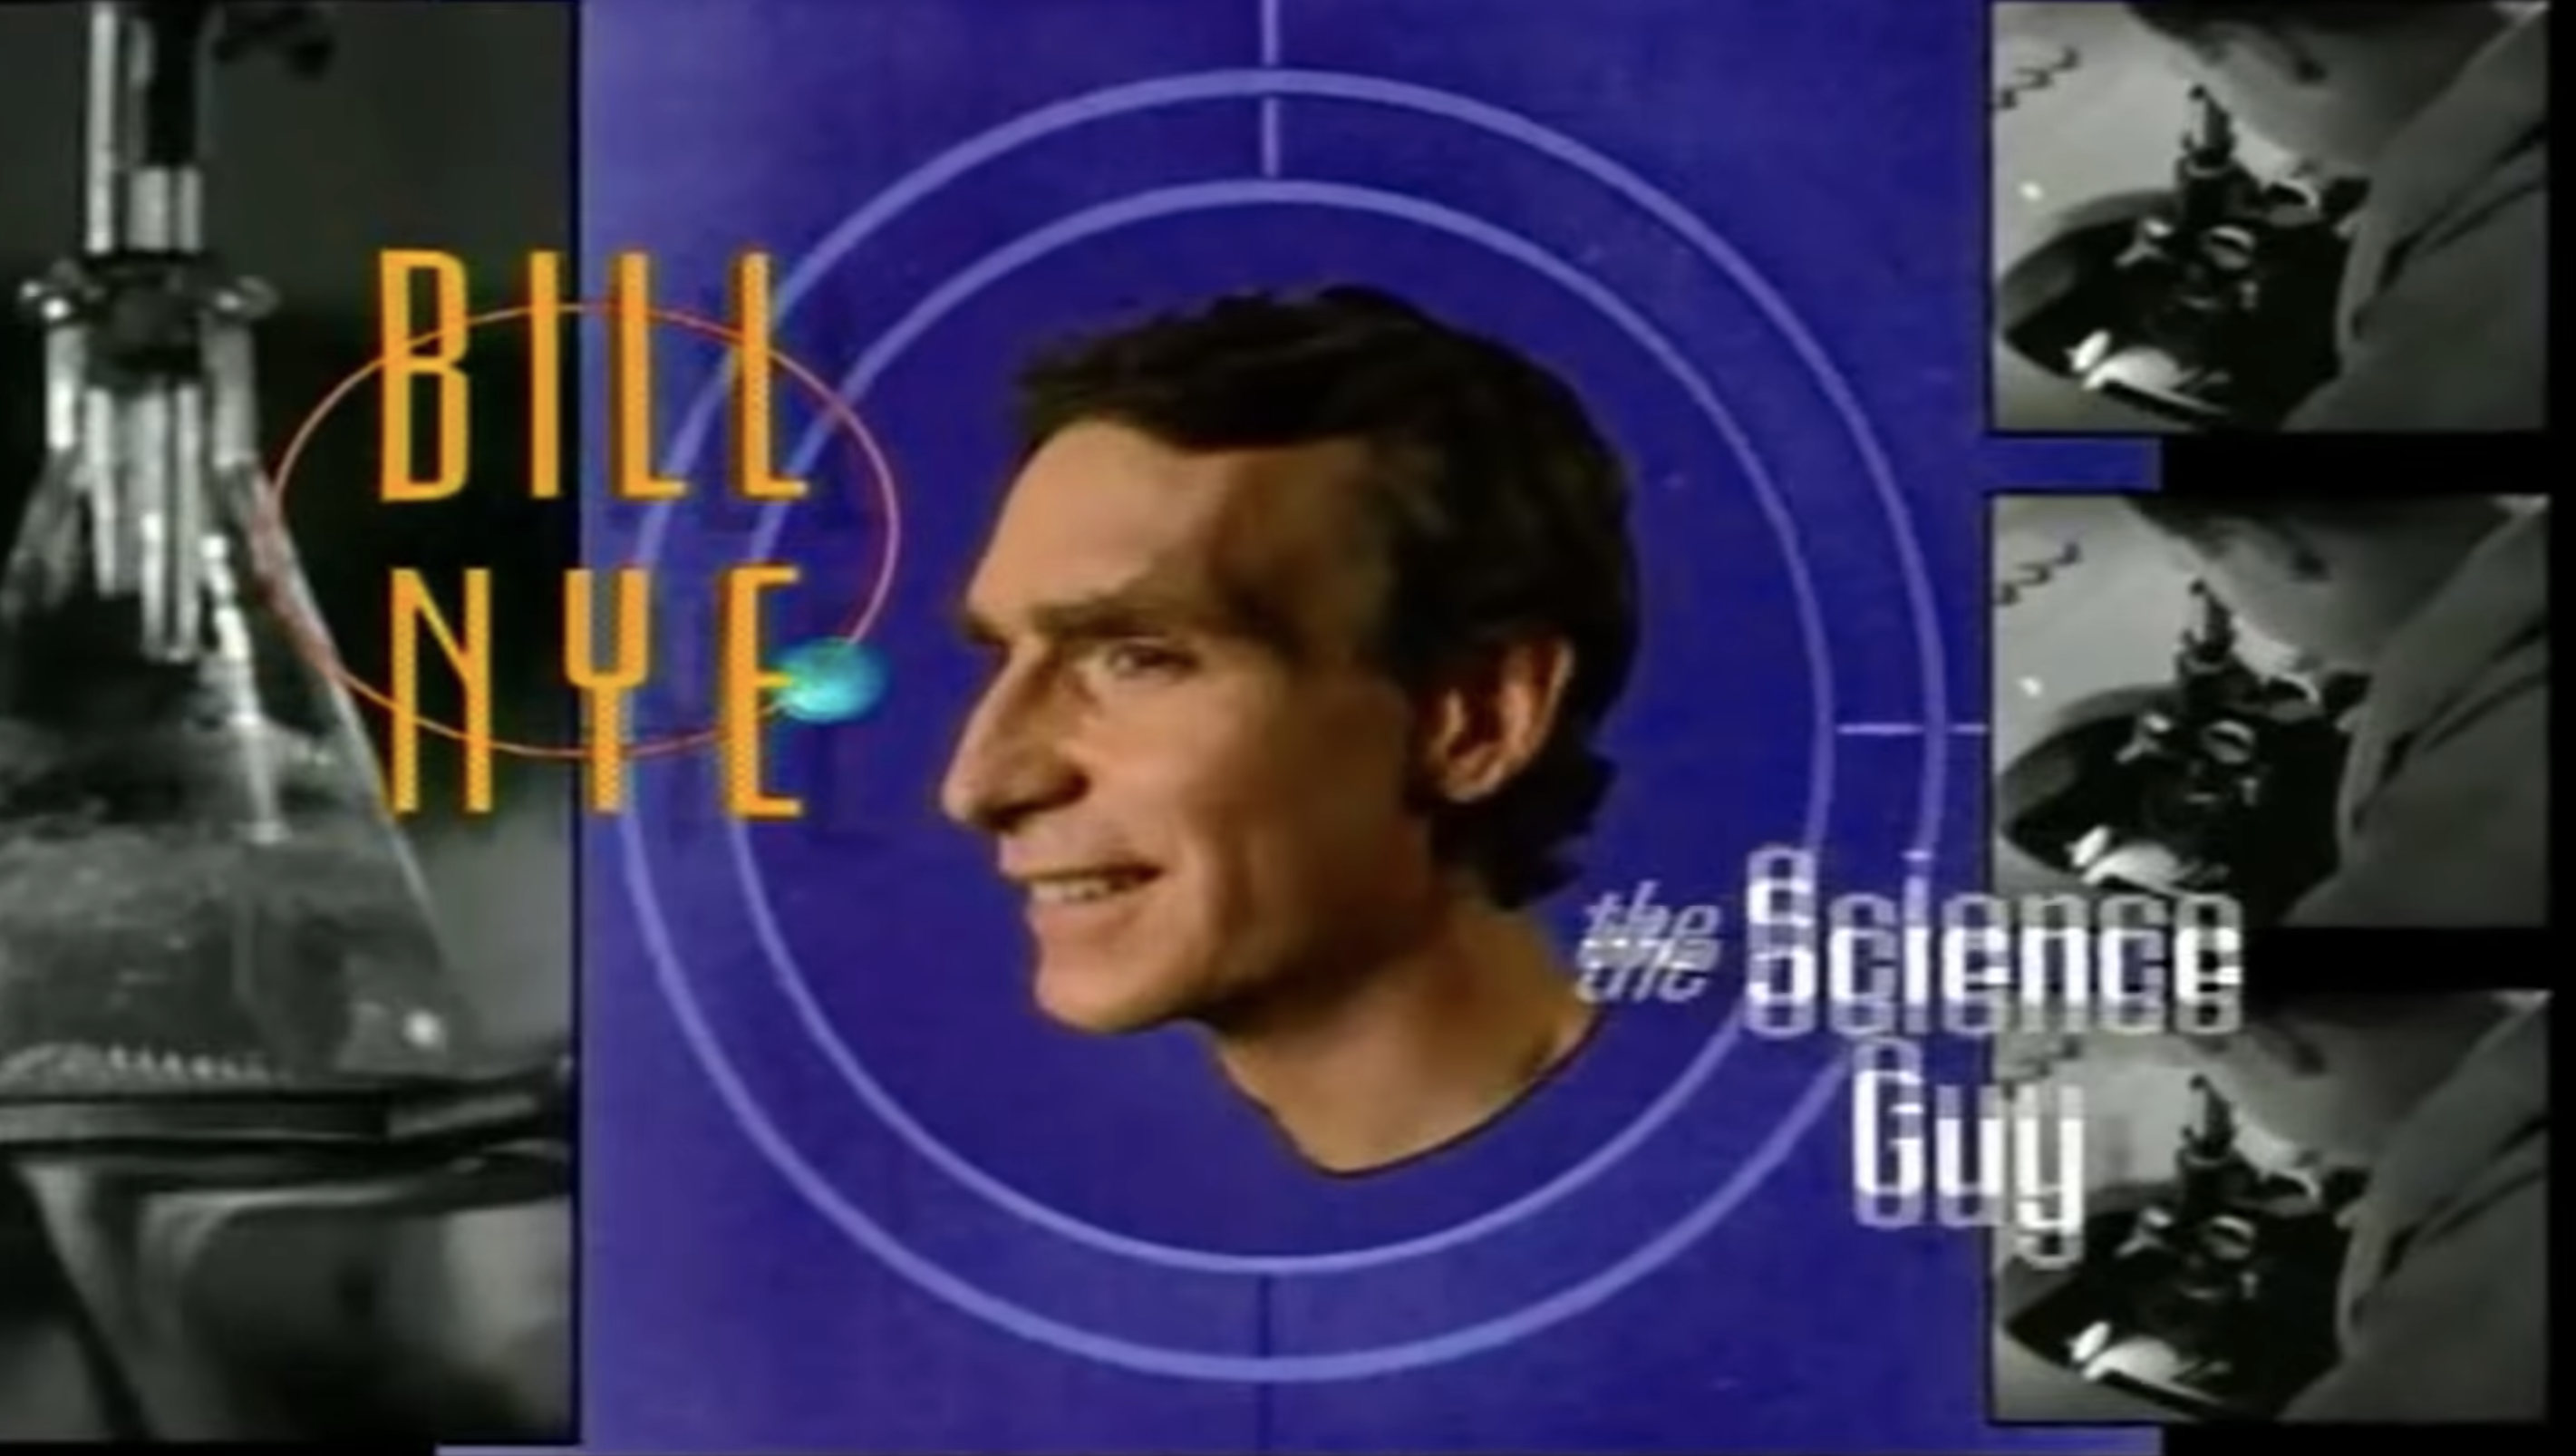 Bill Nye the Science Guy intro